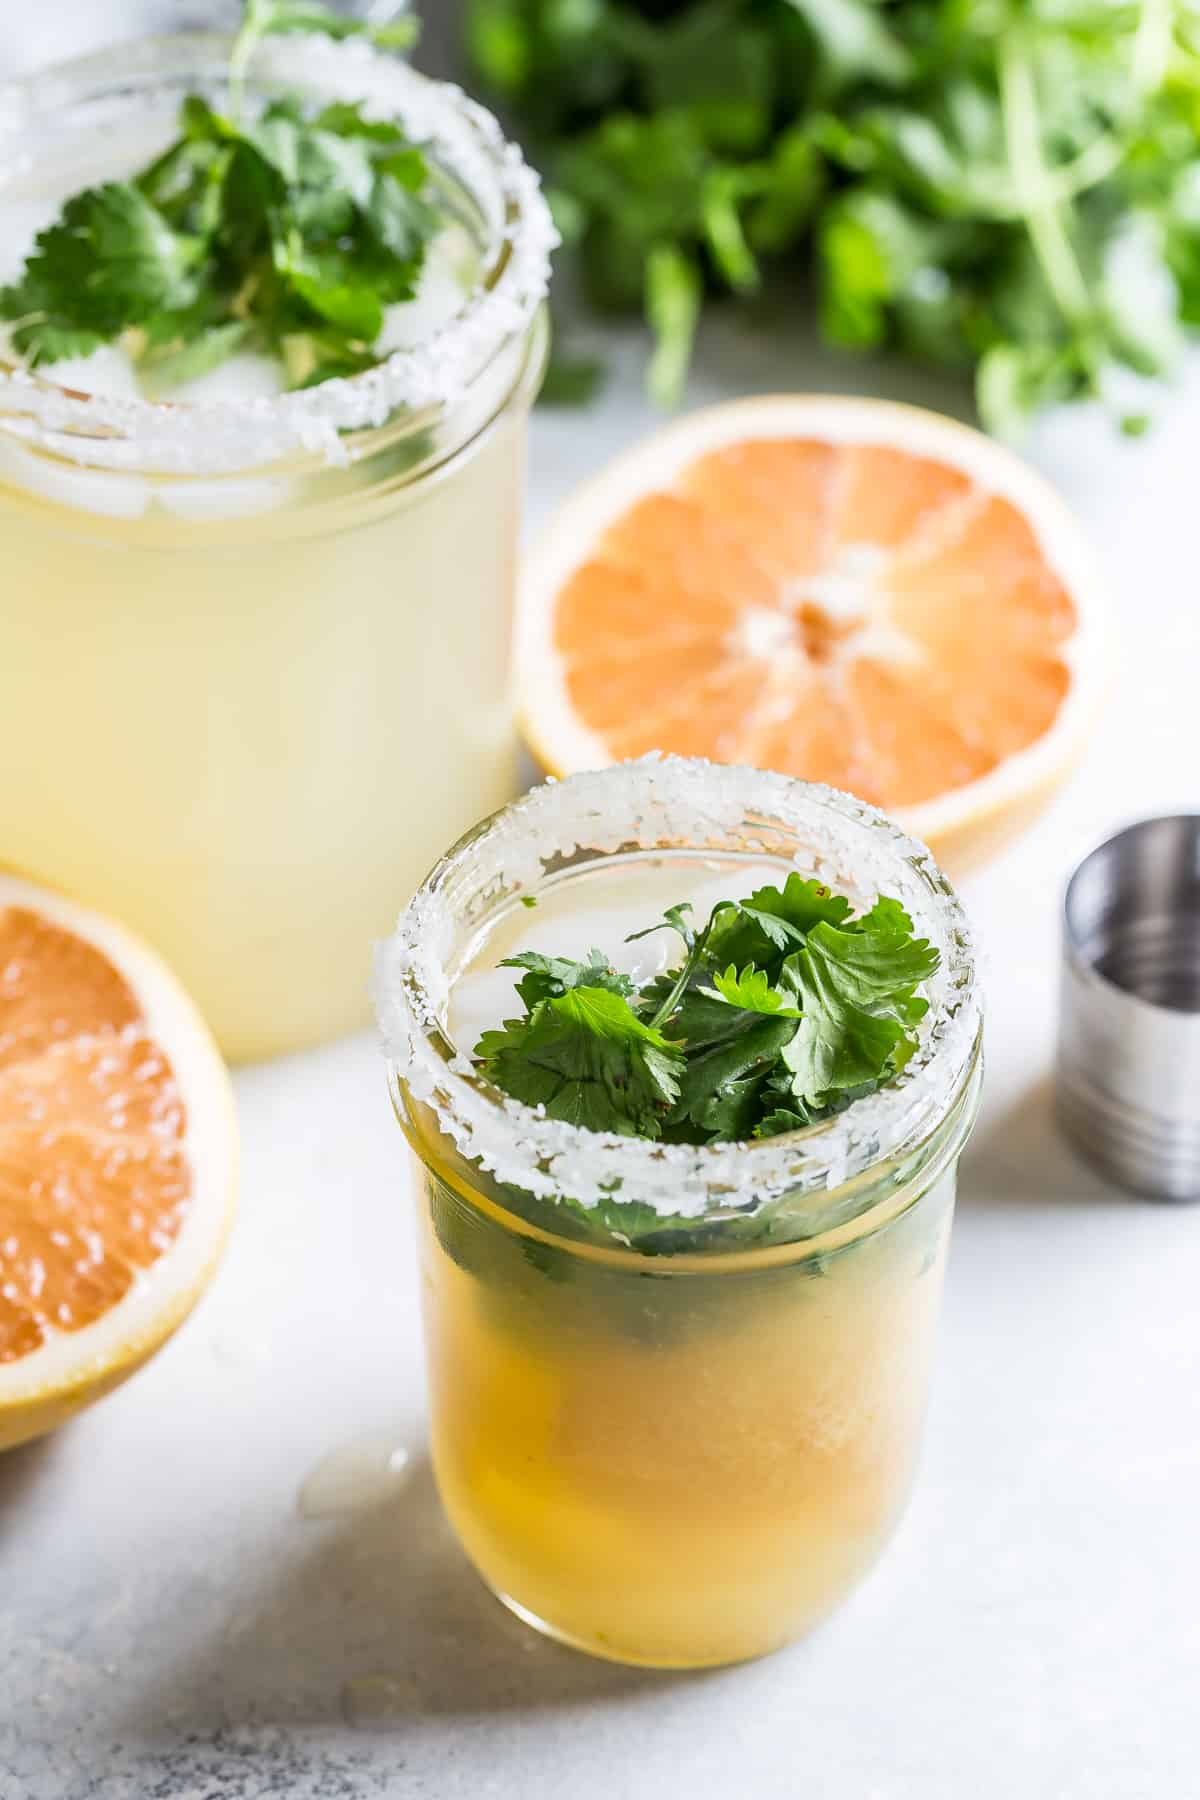 A refreshing grapefruit margarita with cilantro